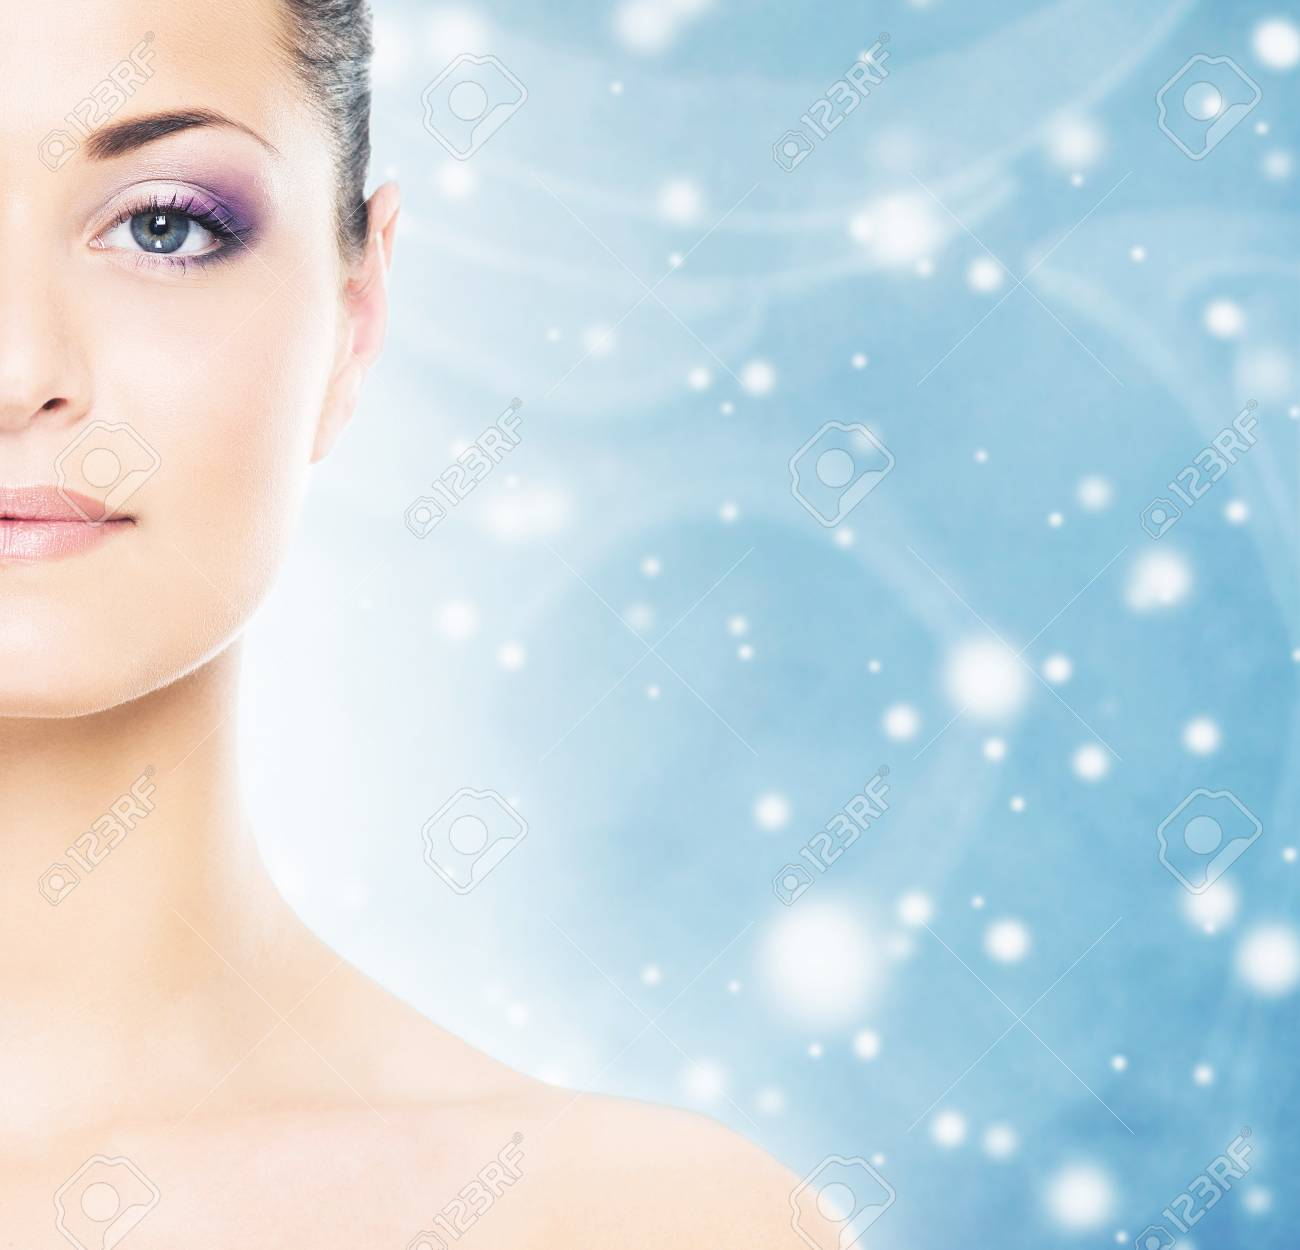 Christmas Background Images Portrait.Spa Portrait Of Young And Beautiful Woman Over Christmas Background